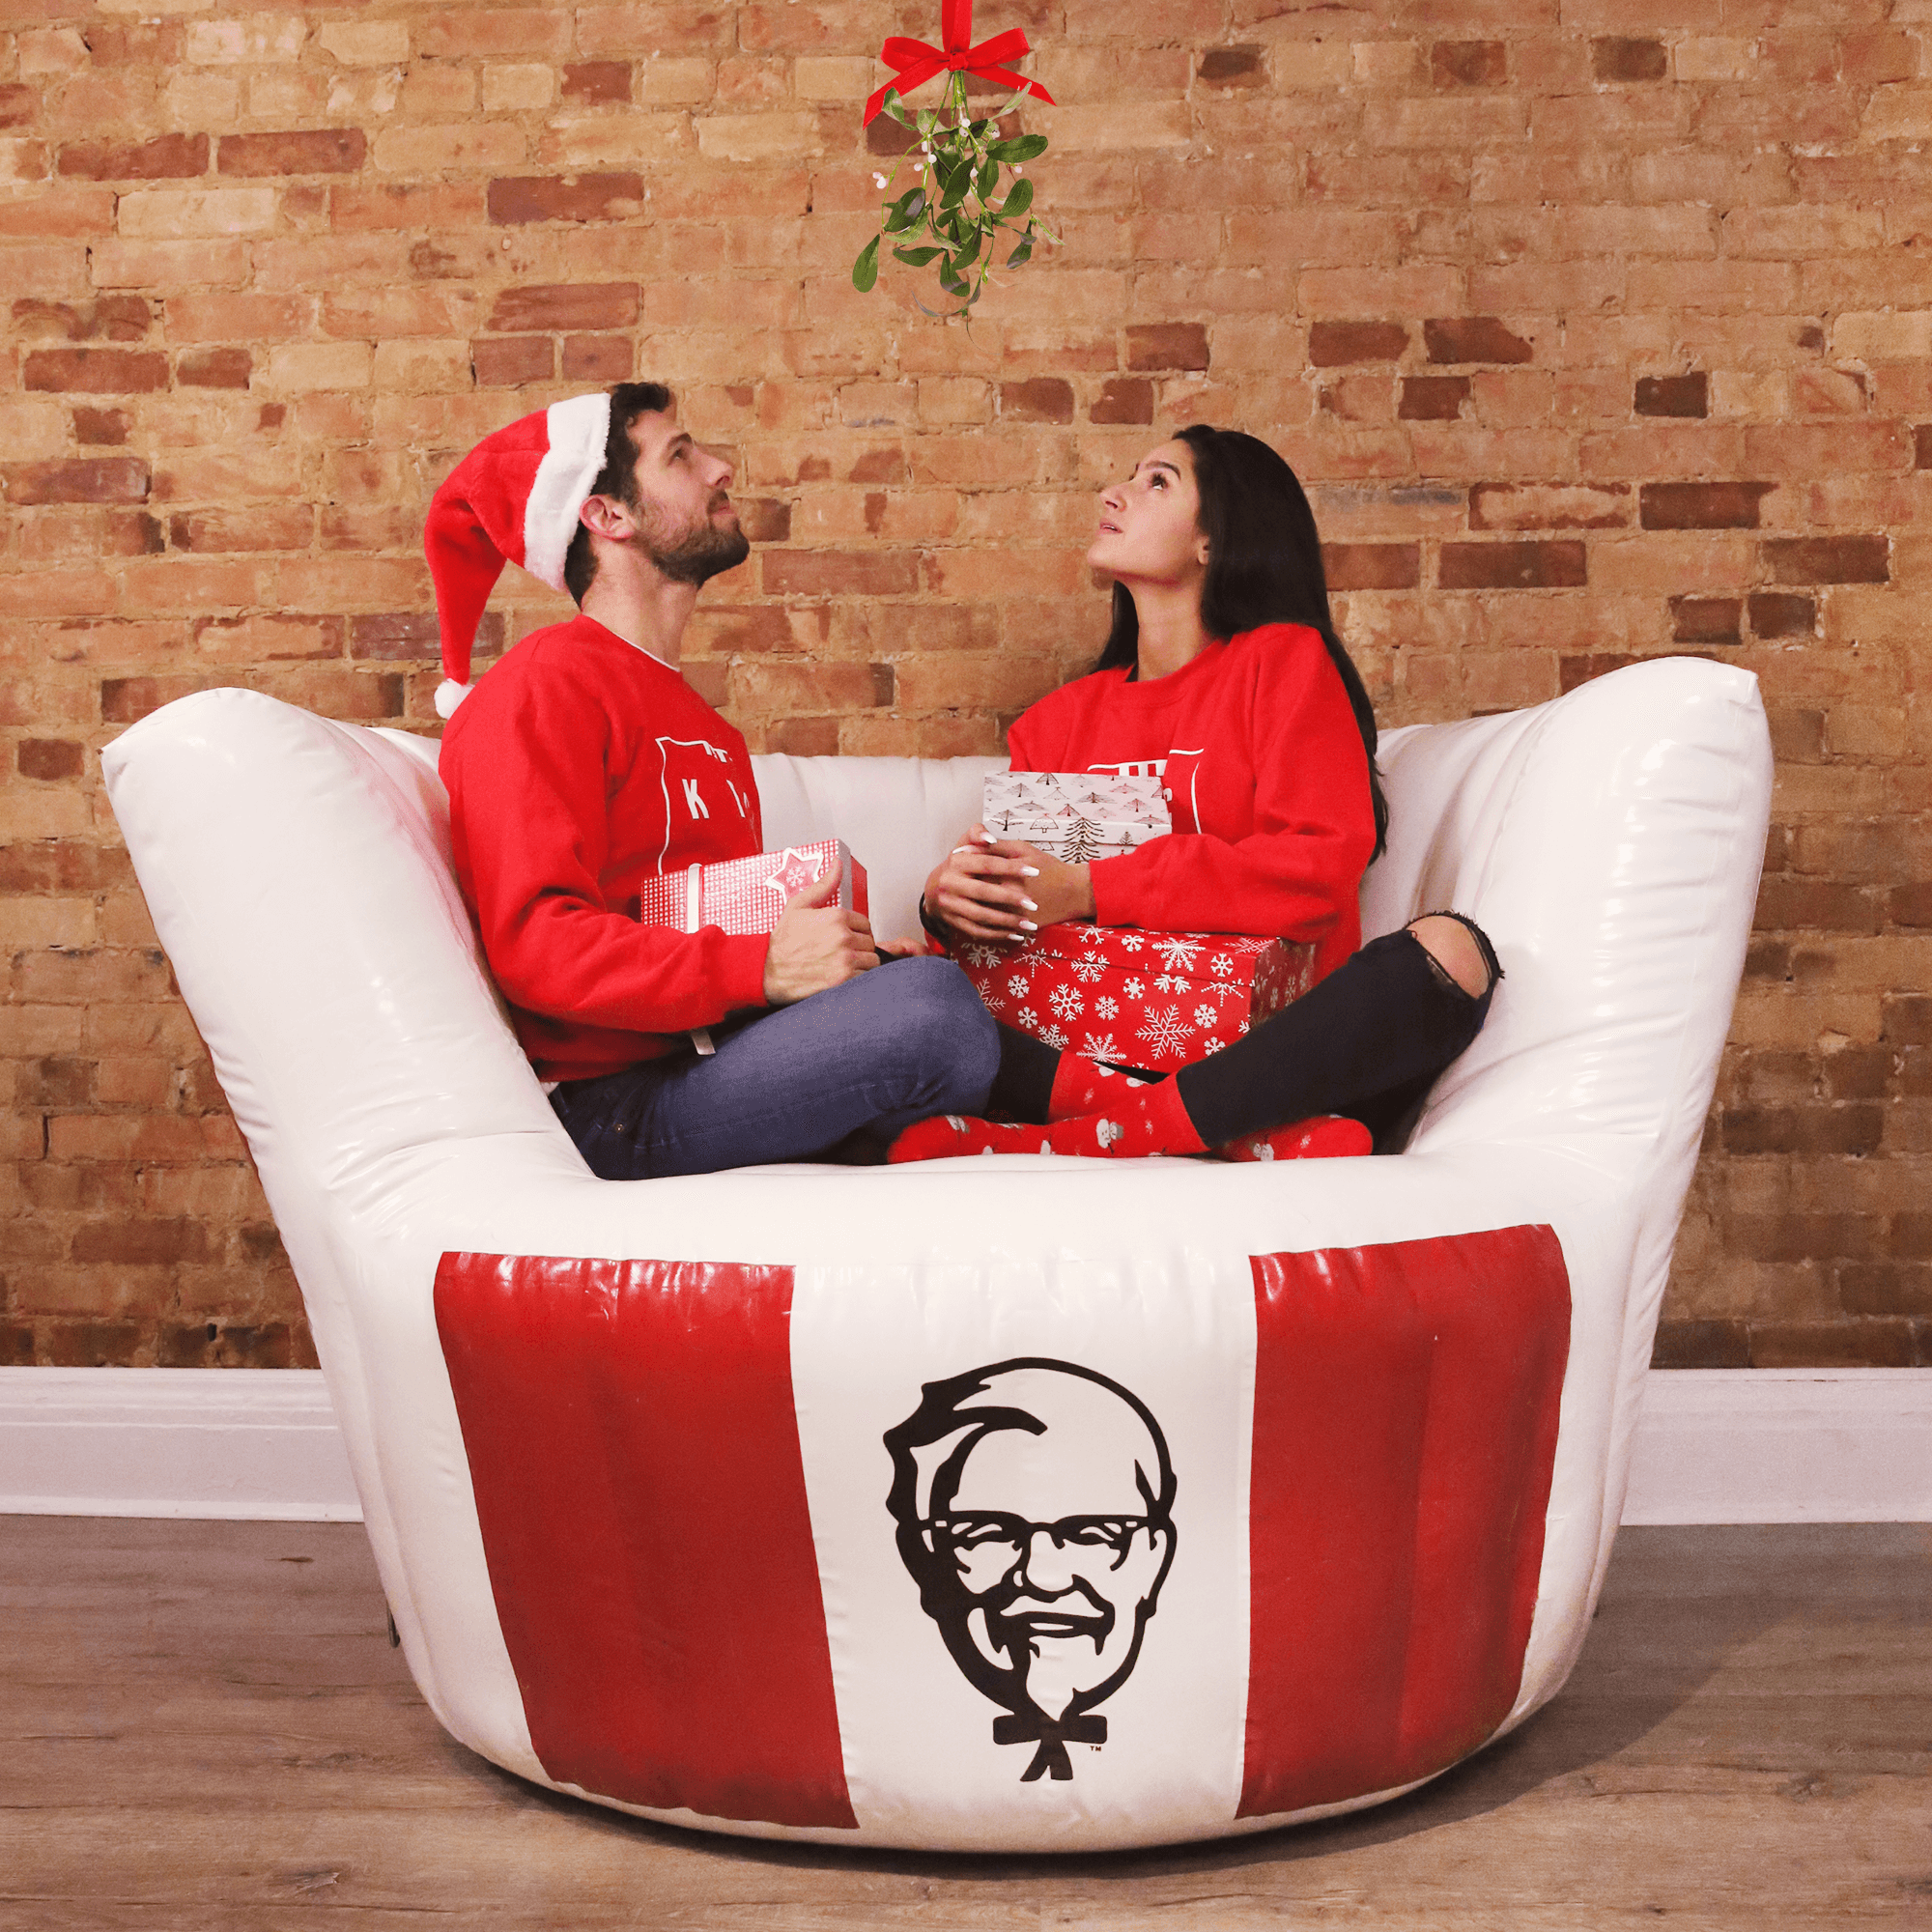 Colonel & Co. KFC clothing line